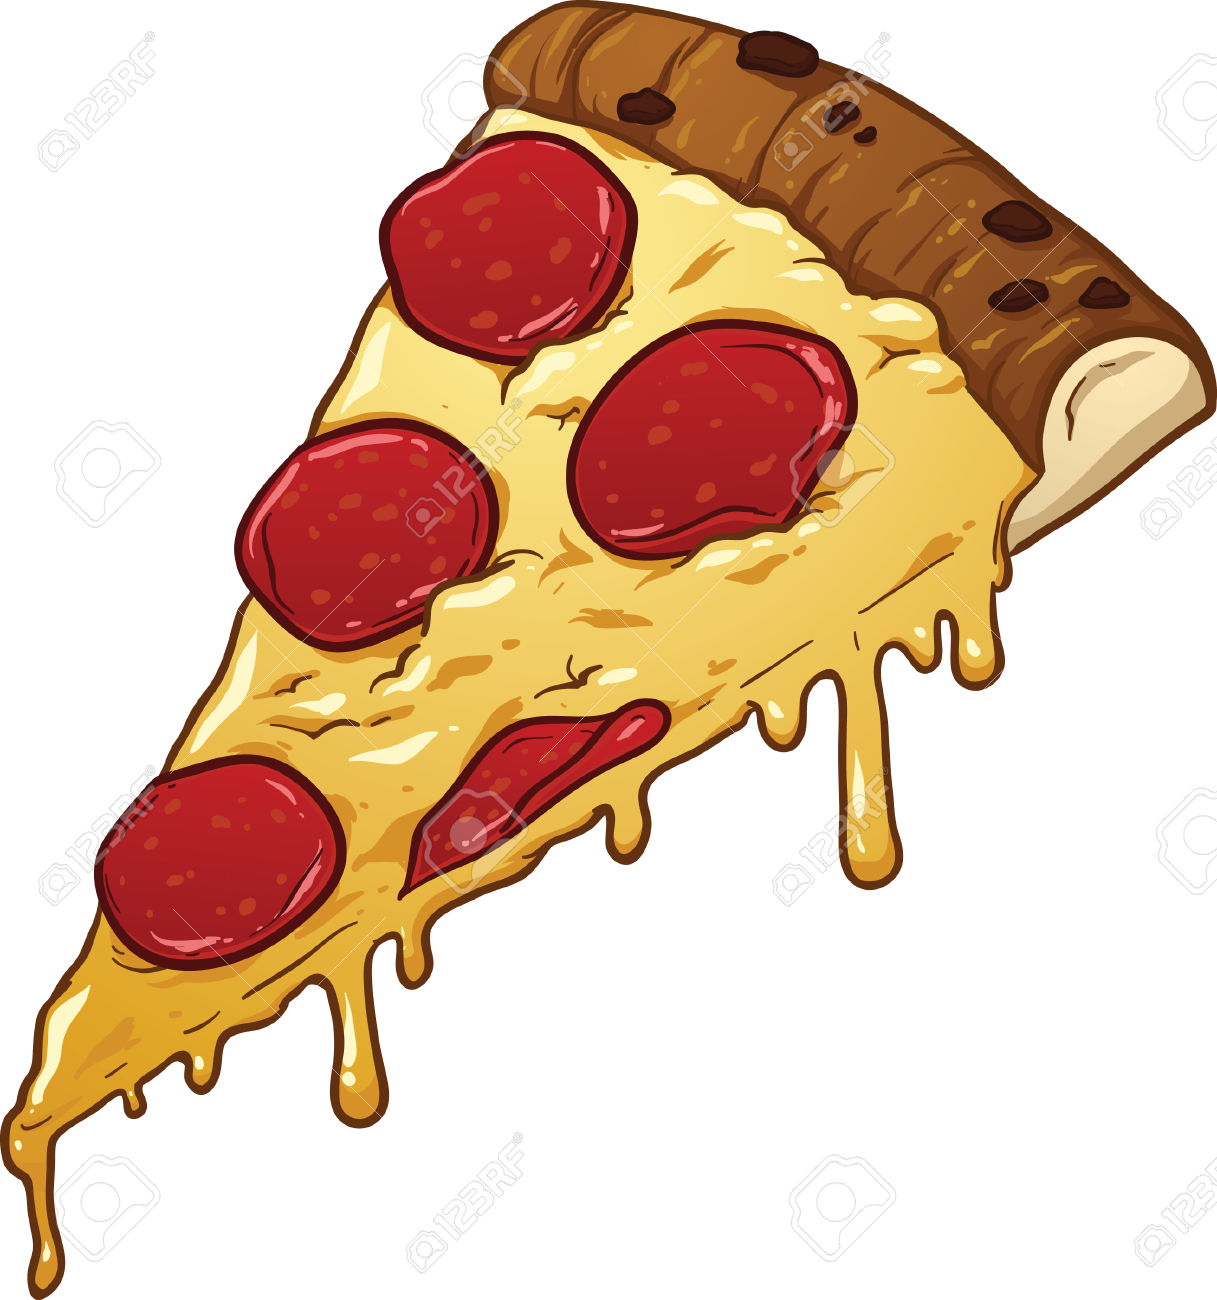 cheese pizza drawing at getdrawings com free for personal use rh getdrawings com plain cheese pizza clipart cheese pizza clipart free